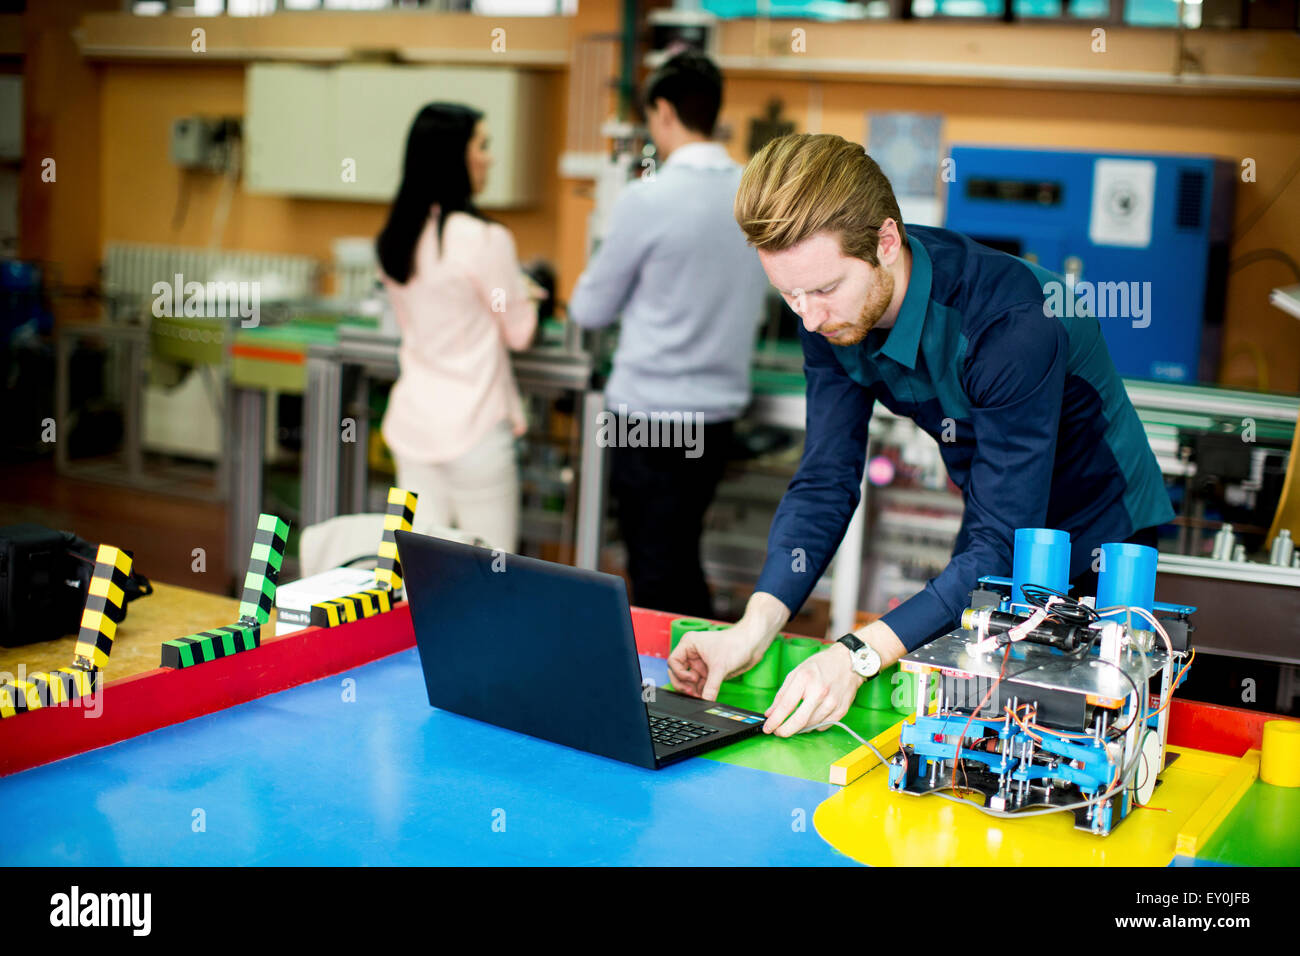 Young People In The Robotics Classroom Stock Photo 85451727 Alamy